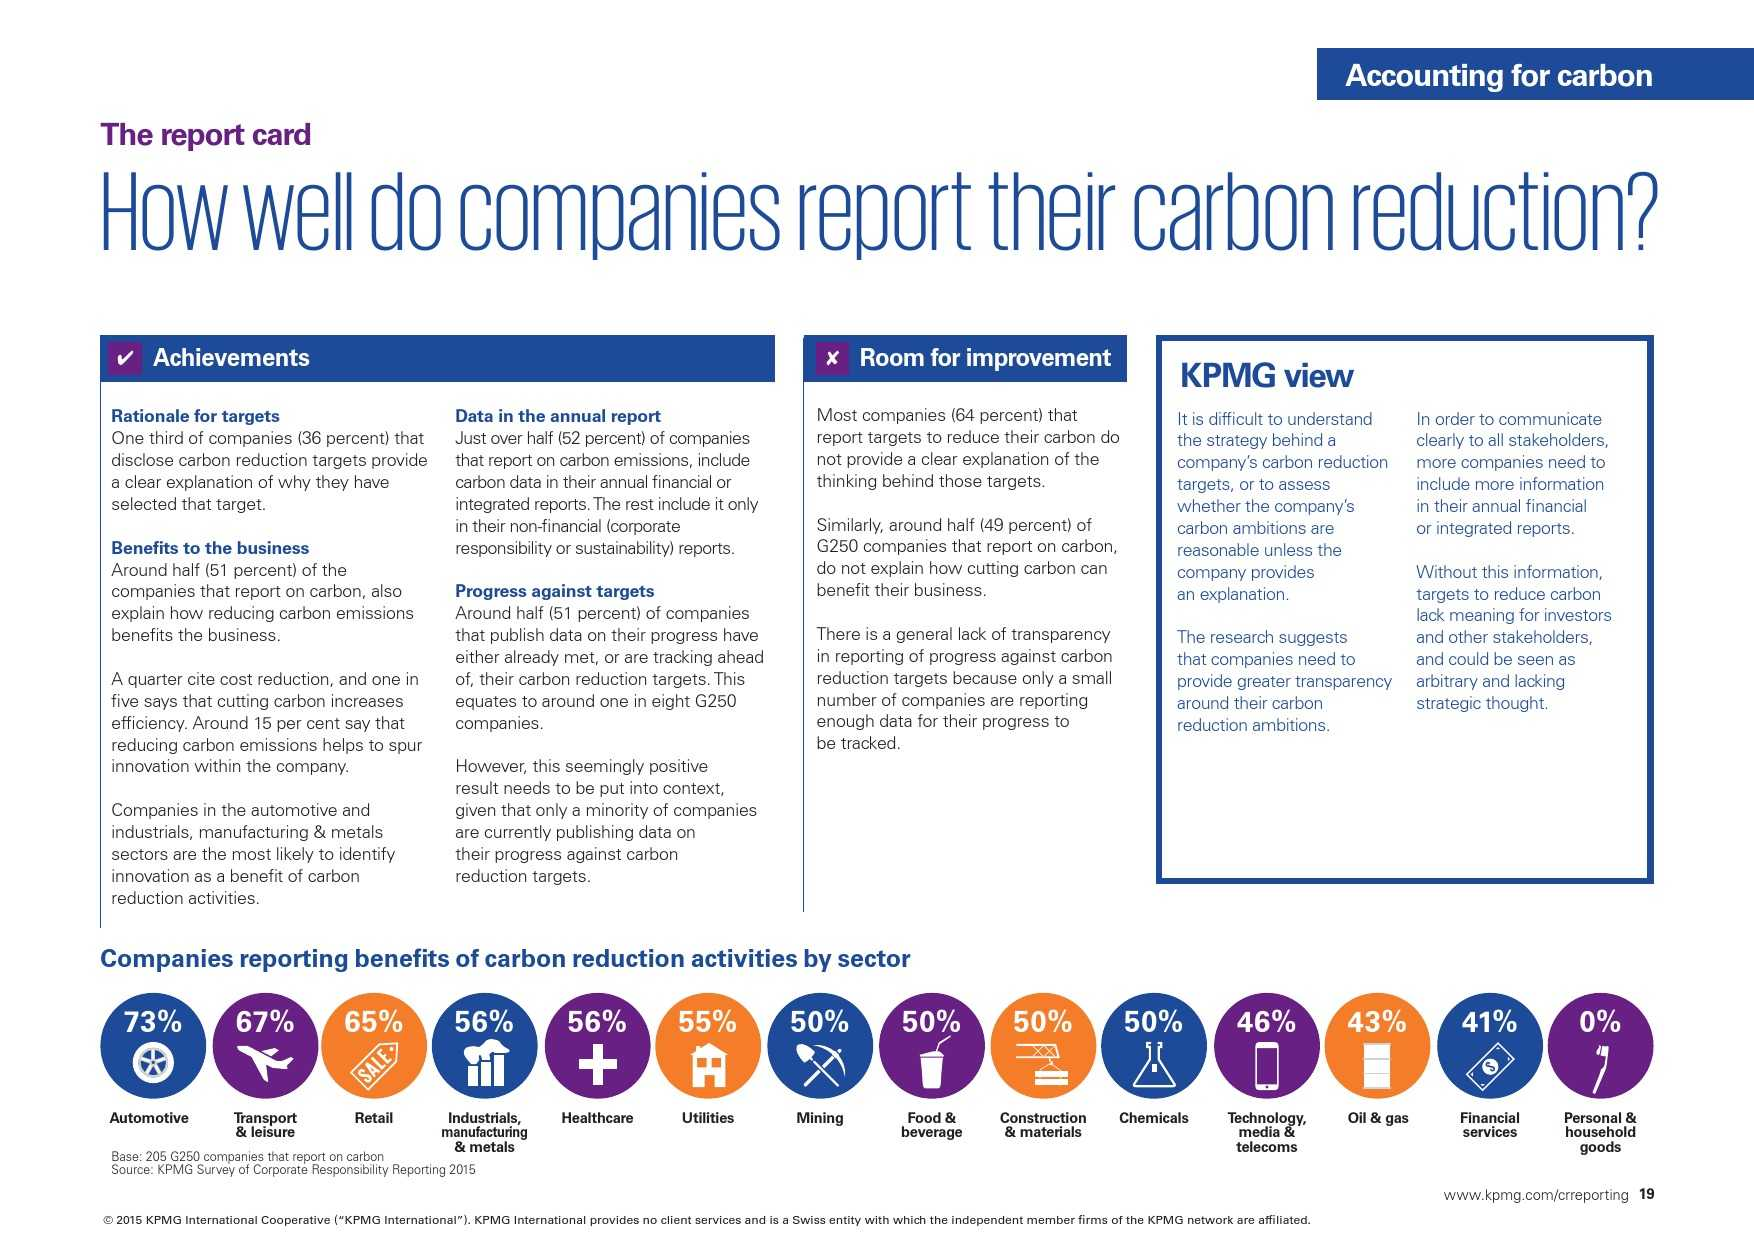 kpmg-international-survey-of-corporate-responsibility-reporting-2015_000019